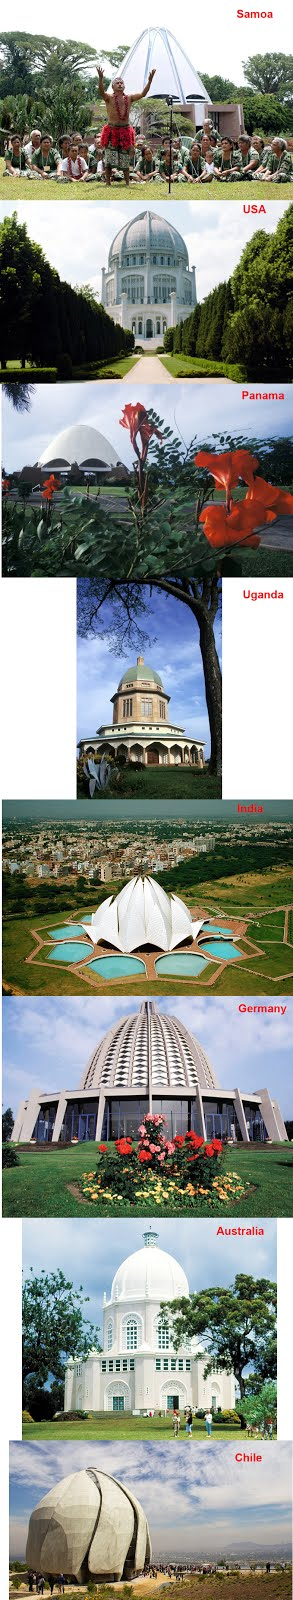 Baha'i Temples in the World